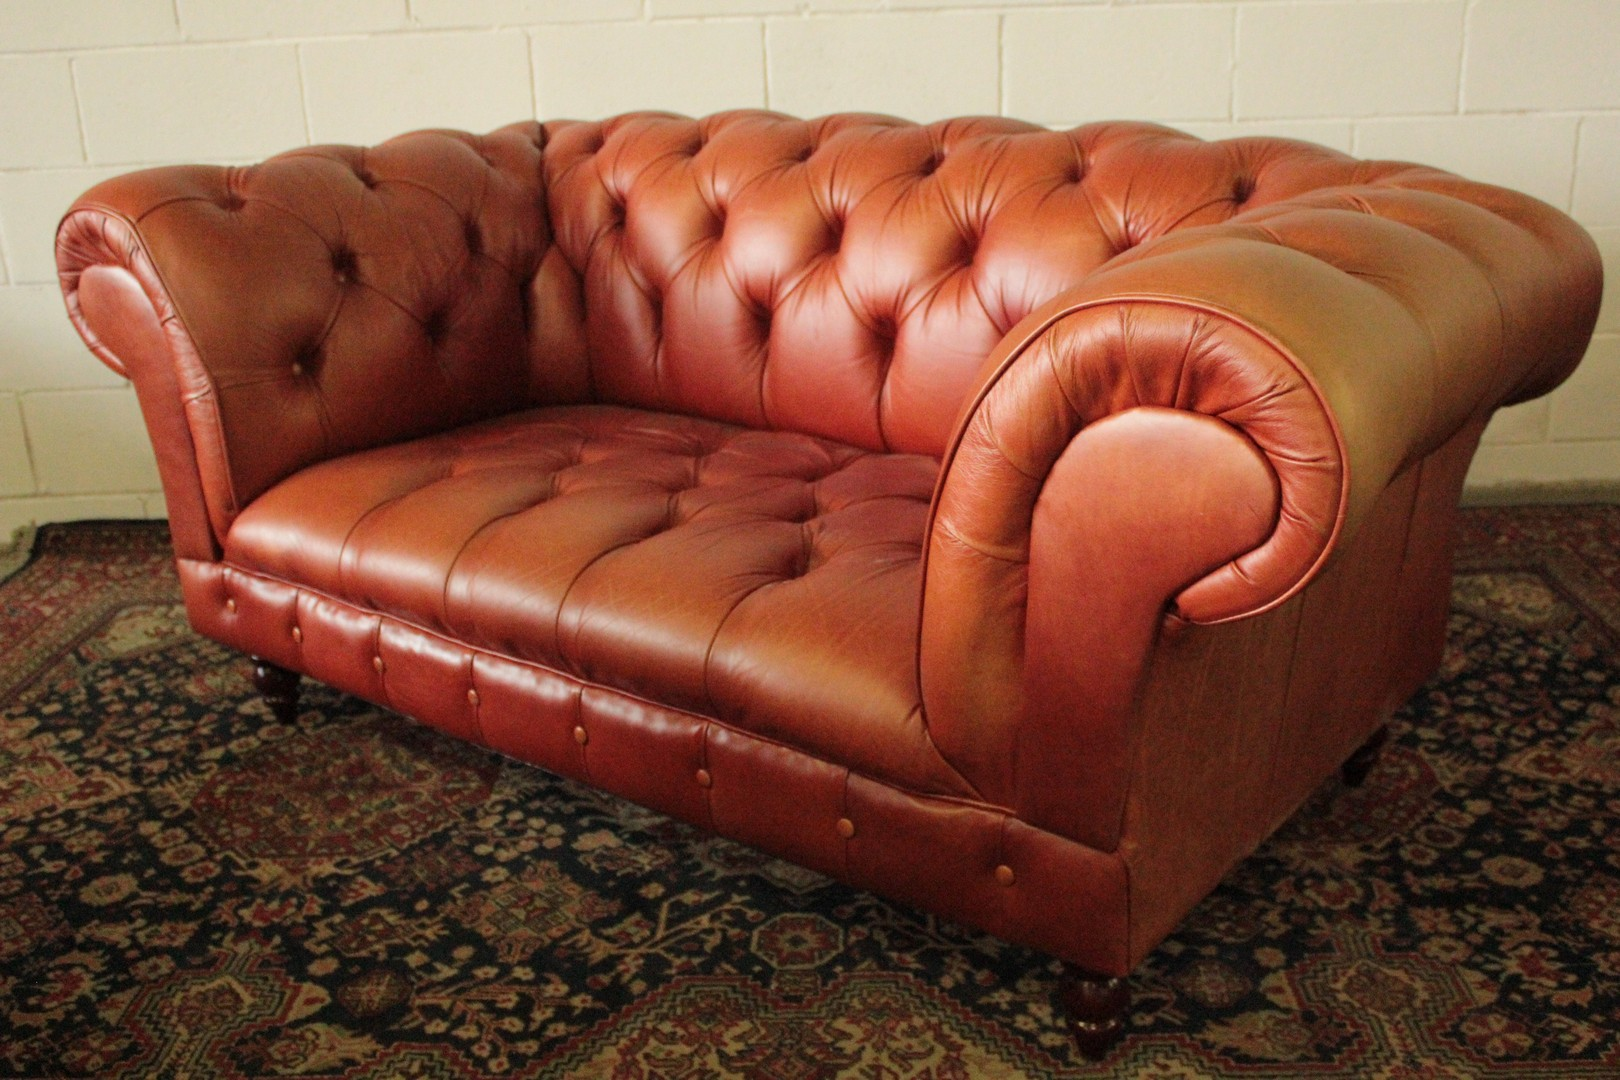 Canapé Chesterfield 2 Places Canapé Chesterfield 2 Places En Cuir Orange D 39origine Fabriqué